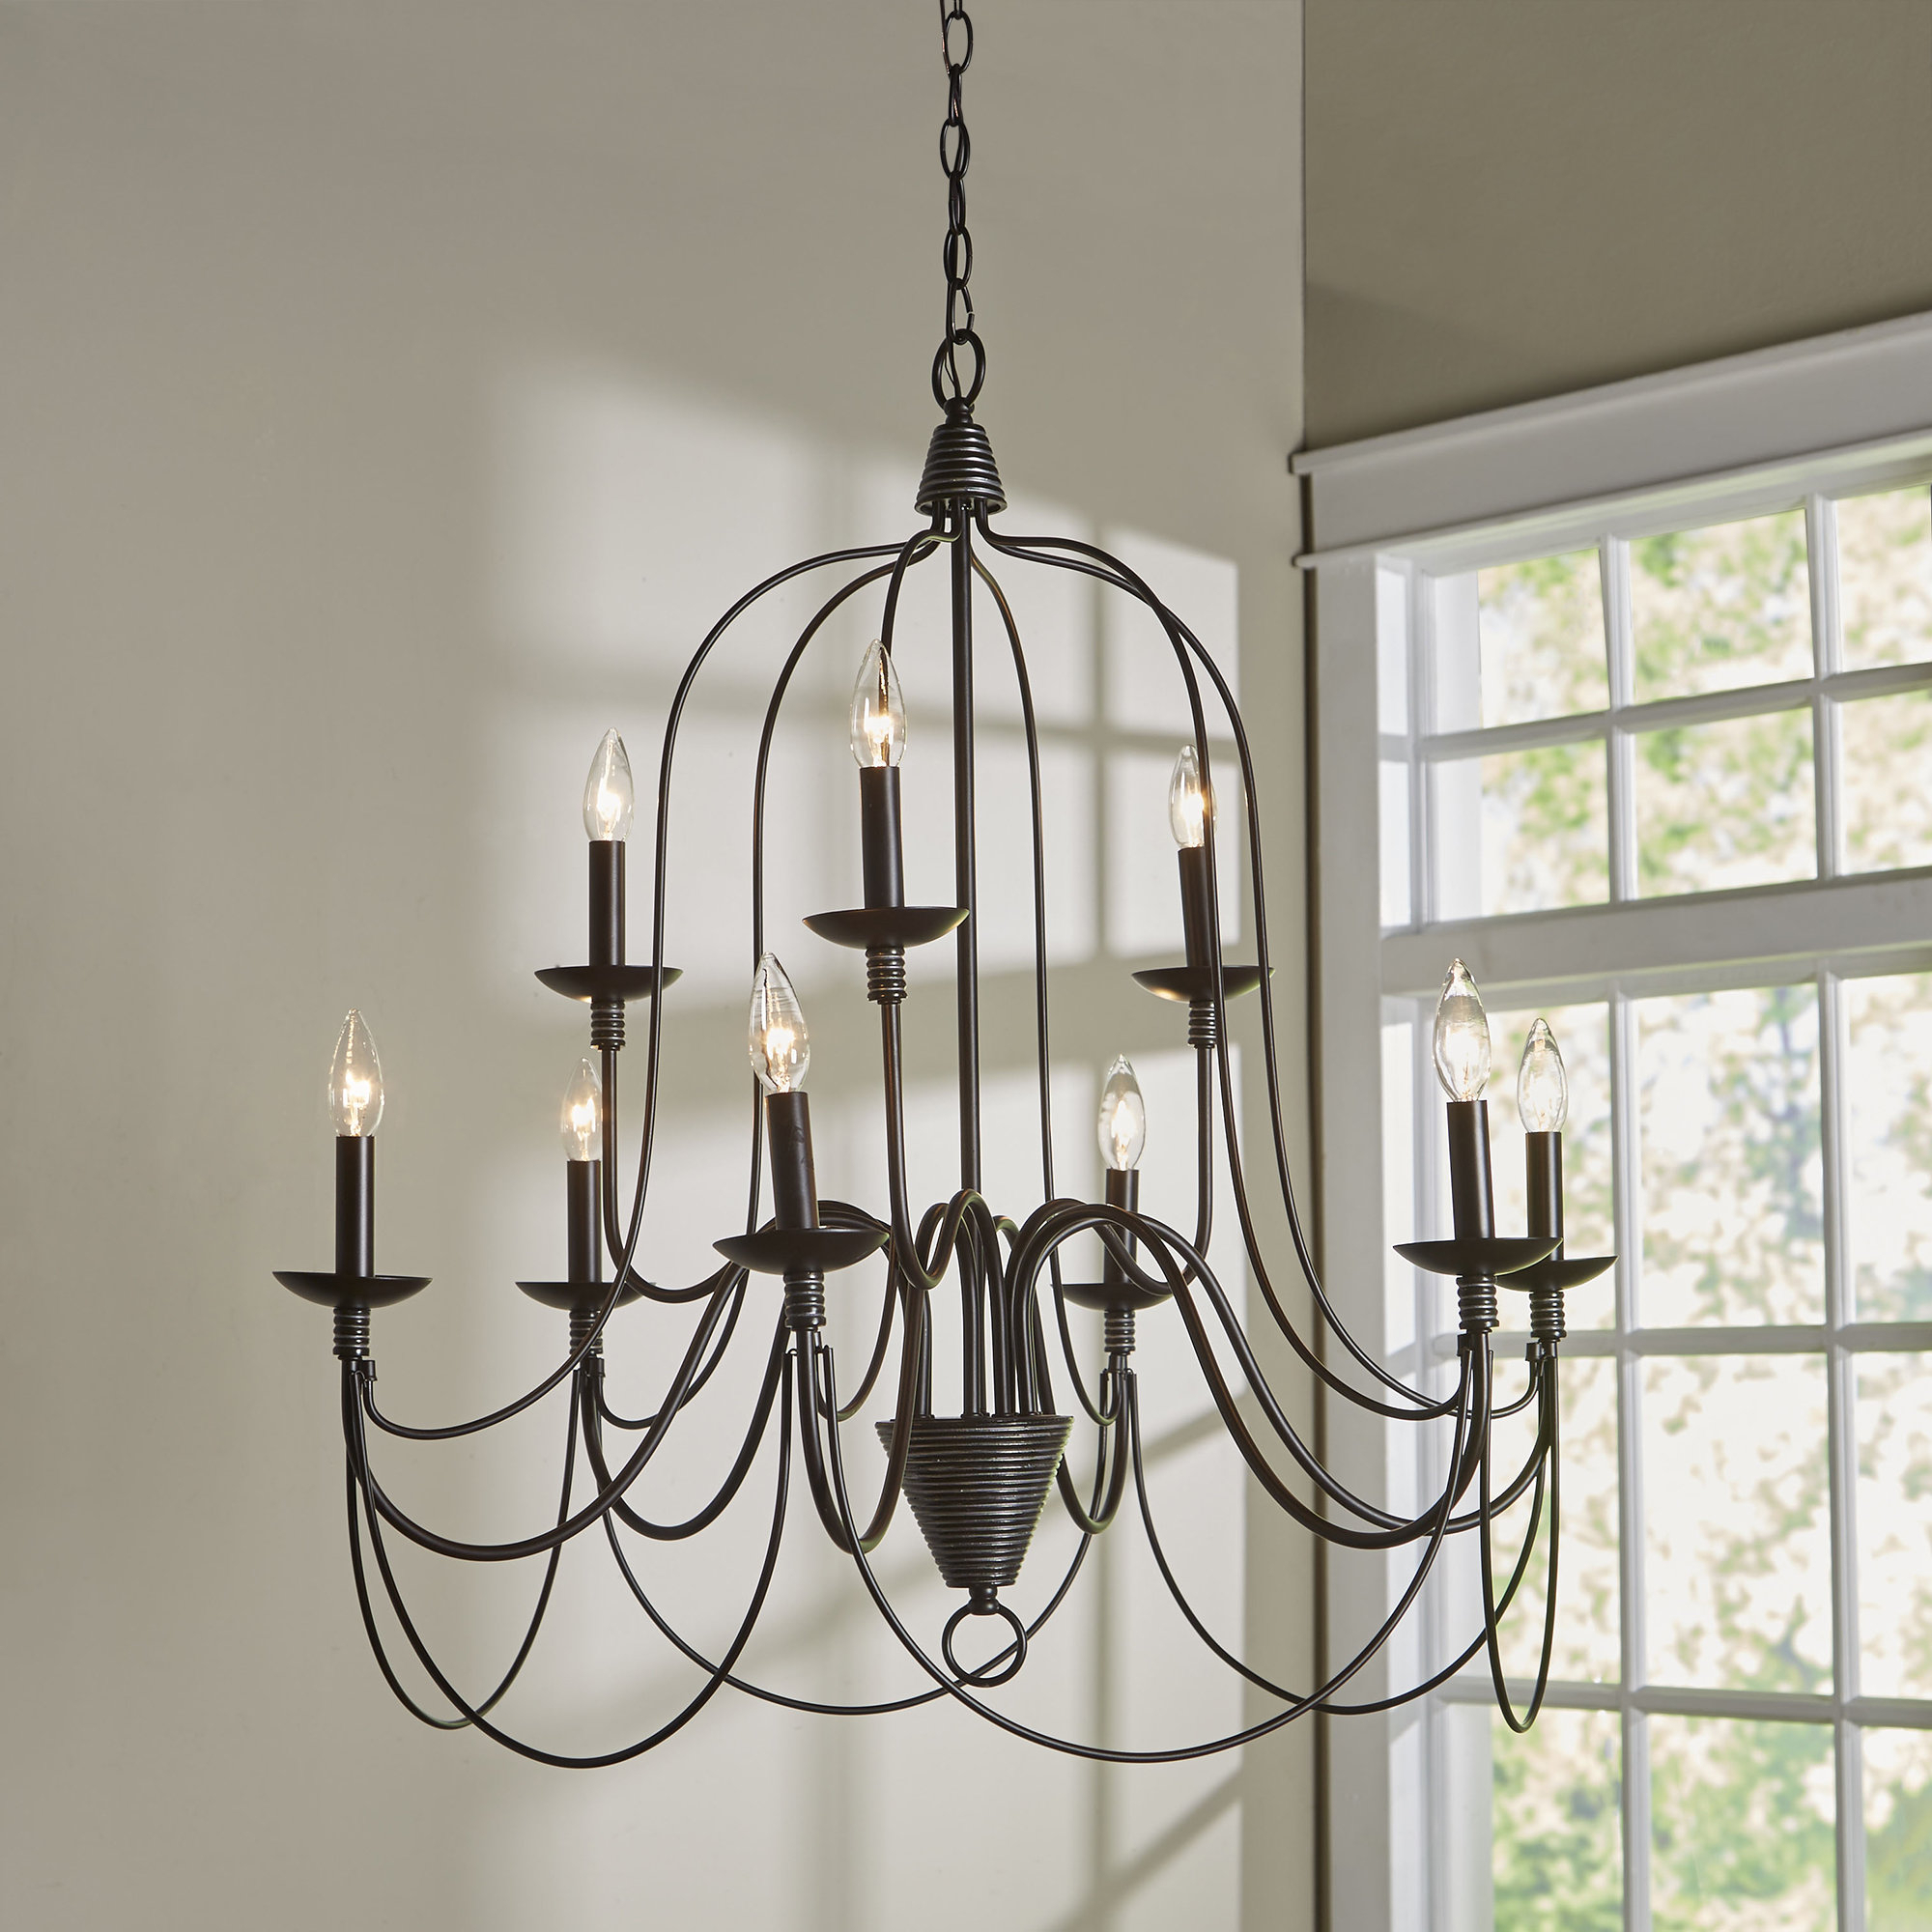 Watford 9 Light Candle Style Chandelier Intended For Famous Giverny 9 Light Candle Style Chandeliers (View 19 of 20)